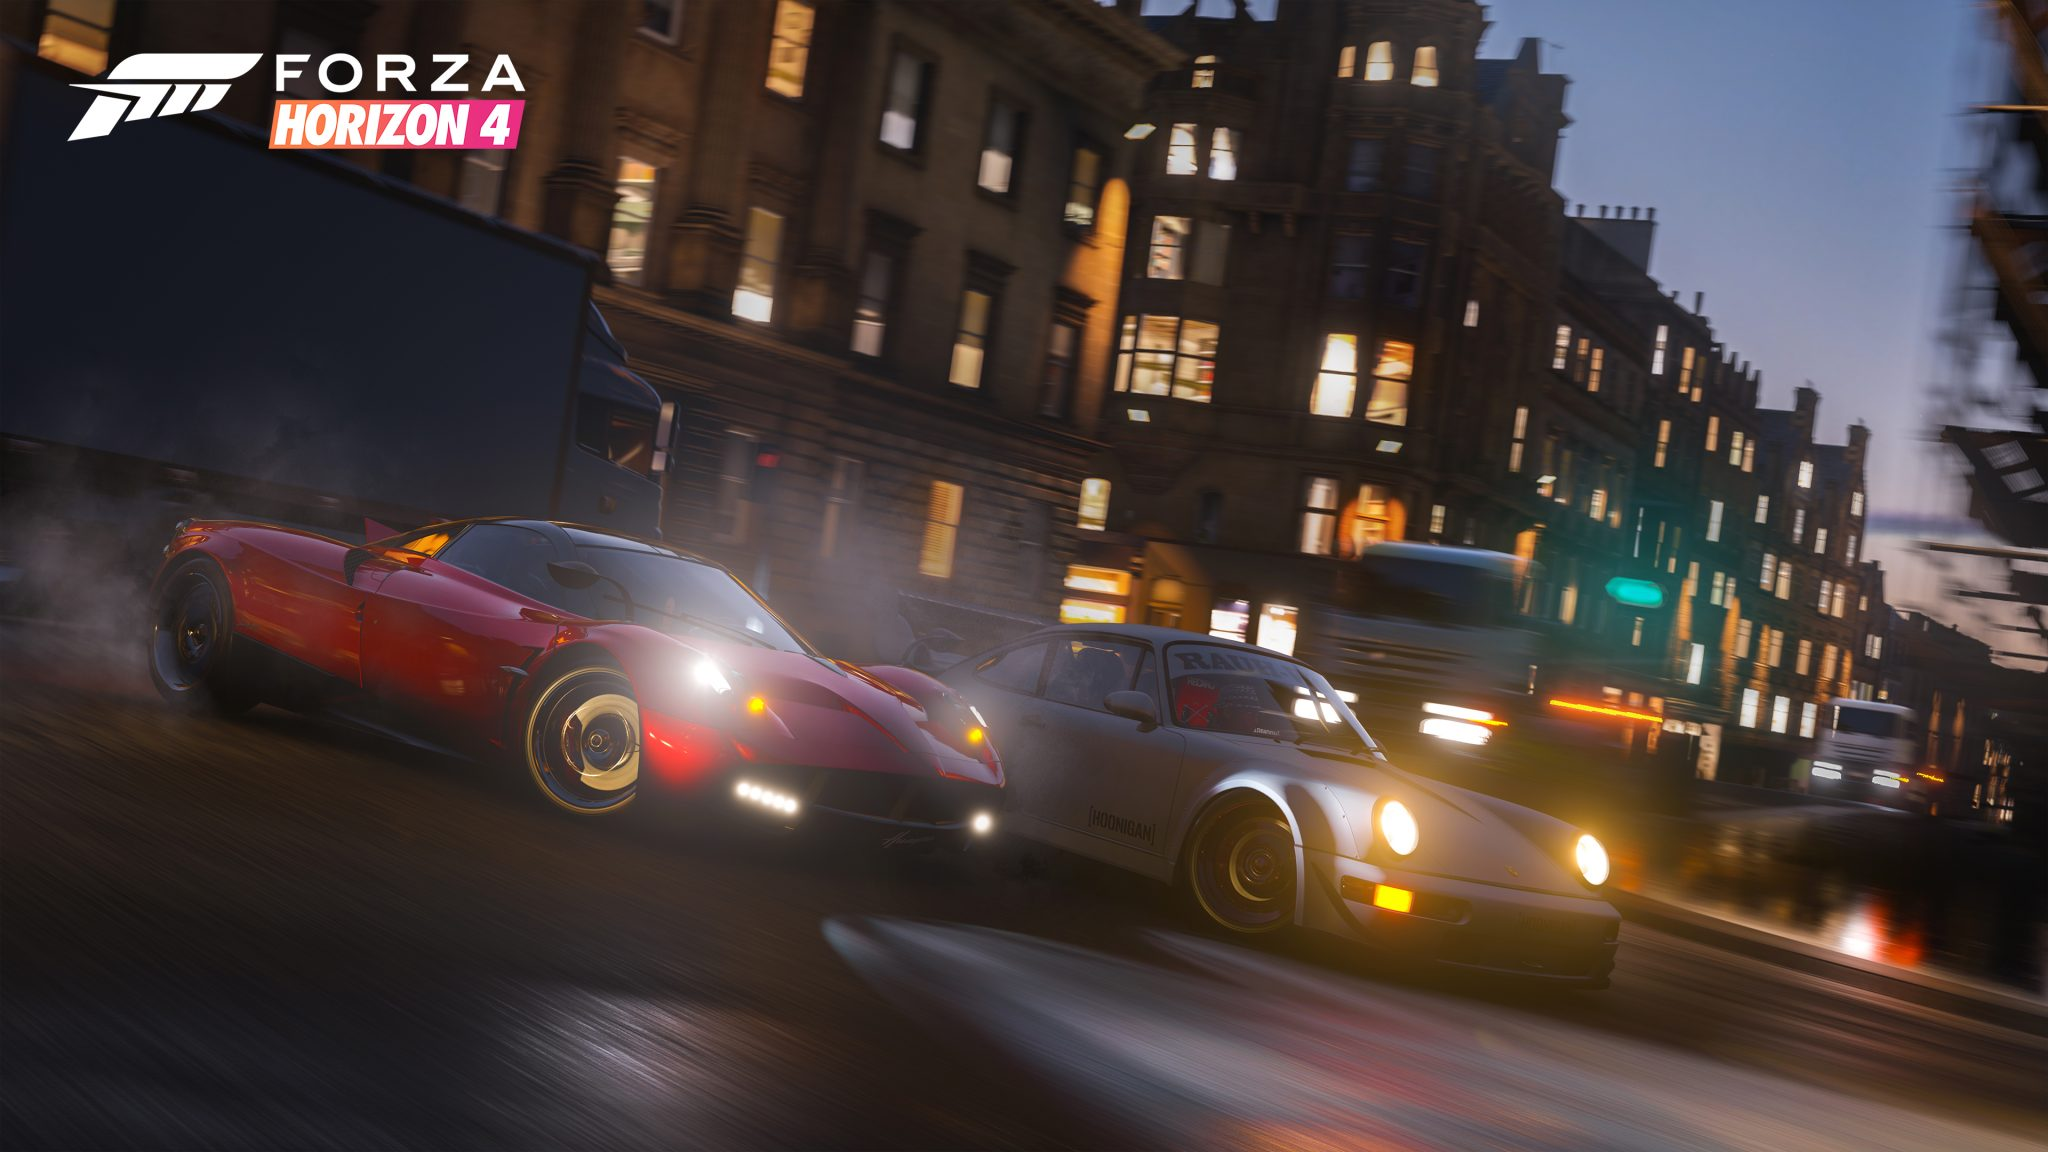 Forza Horizon 4 FH4 Xbox One X PC Ultimate Review Test Kritik Titel Nacht